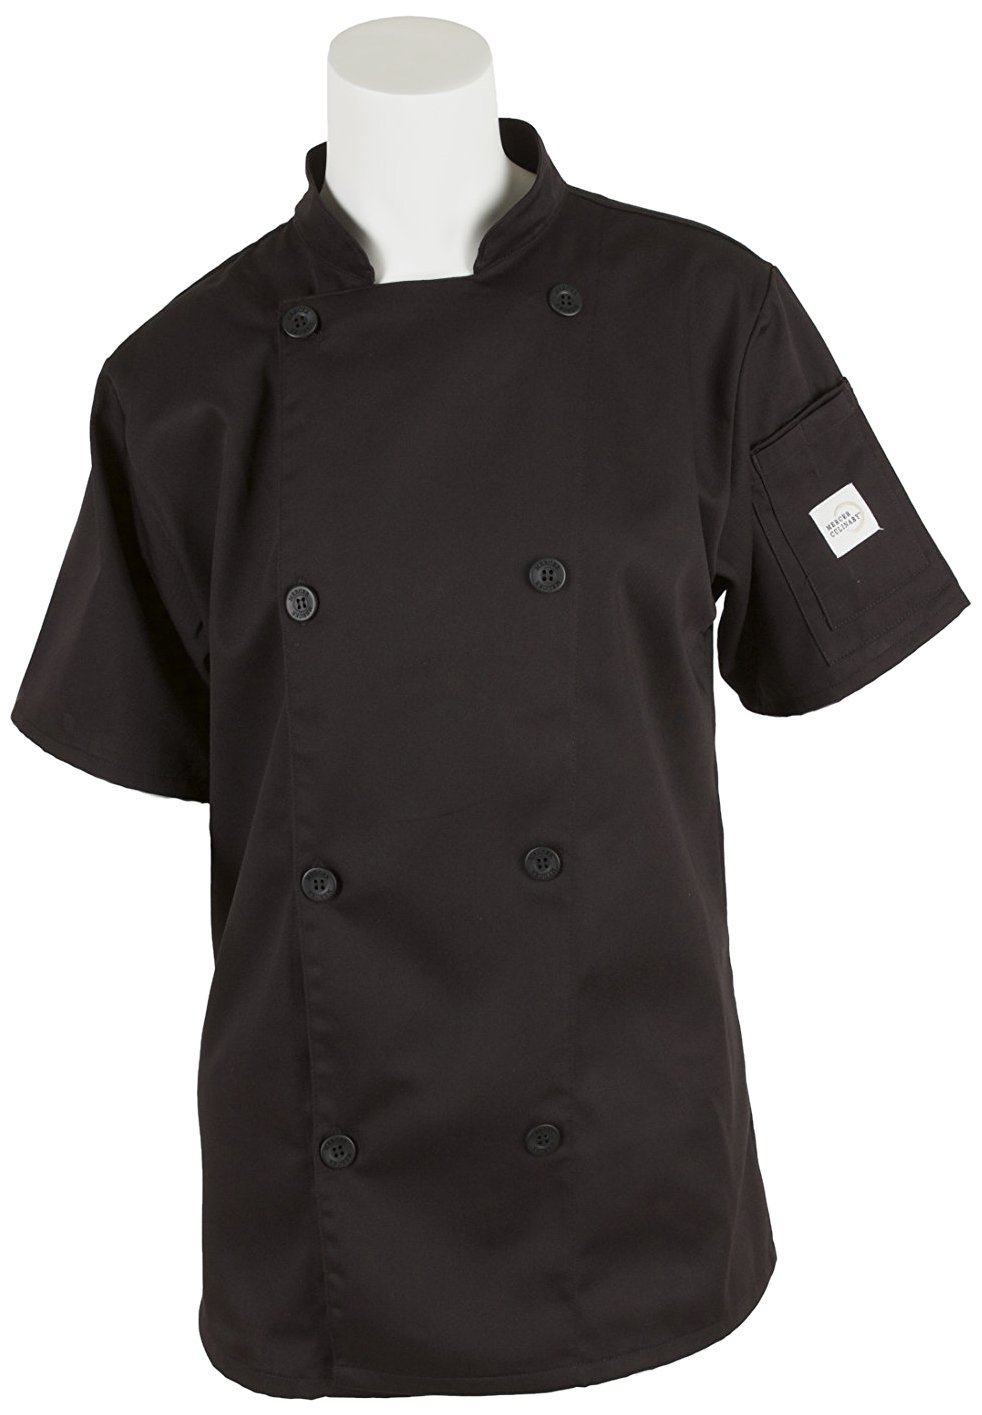 Mercer Culinary M61032BK3X Genesis Women's Short Sleeve Chef Jacket with Traditional Buttons, 3X-Large, Black by Mercer Culinary